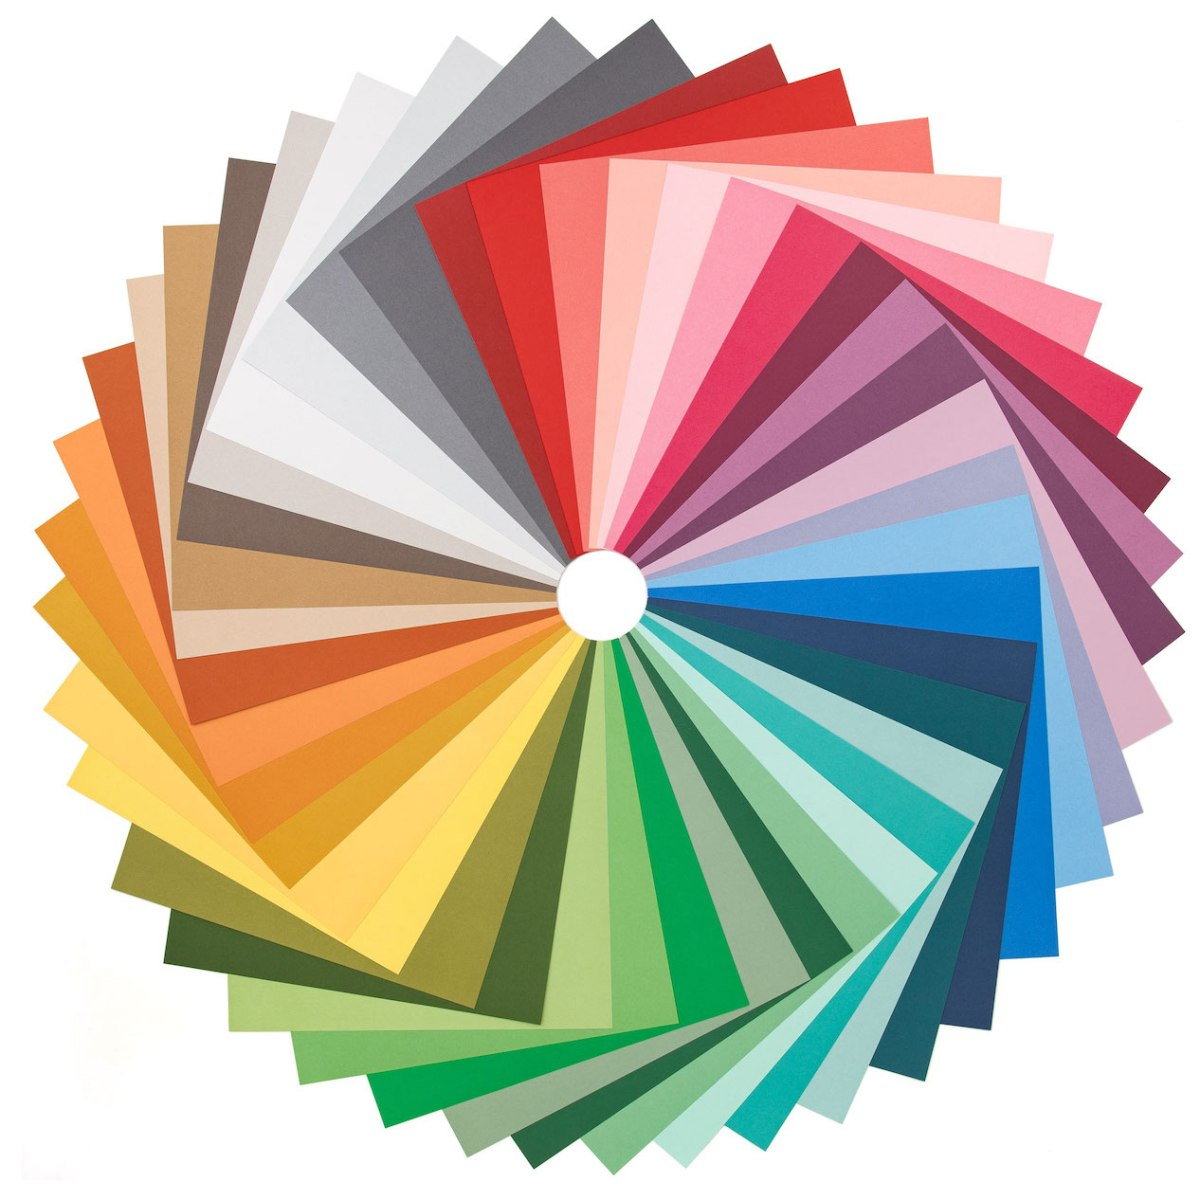 Cardstock Carnival #ctmh #closetomyheart #cardstock #exclusivecolorpalette #exclusivecolourpalatte #ctmhcolors #cmthcolours #colorwheel #colourwheel #cardstockwheel